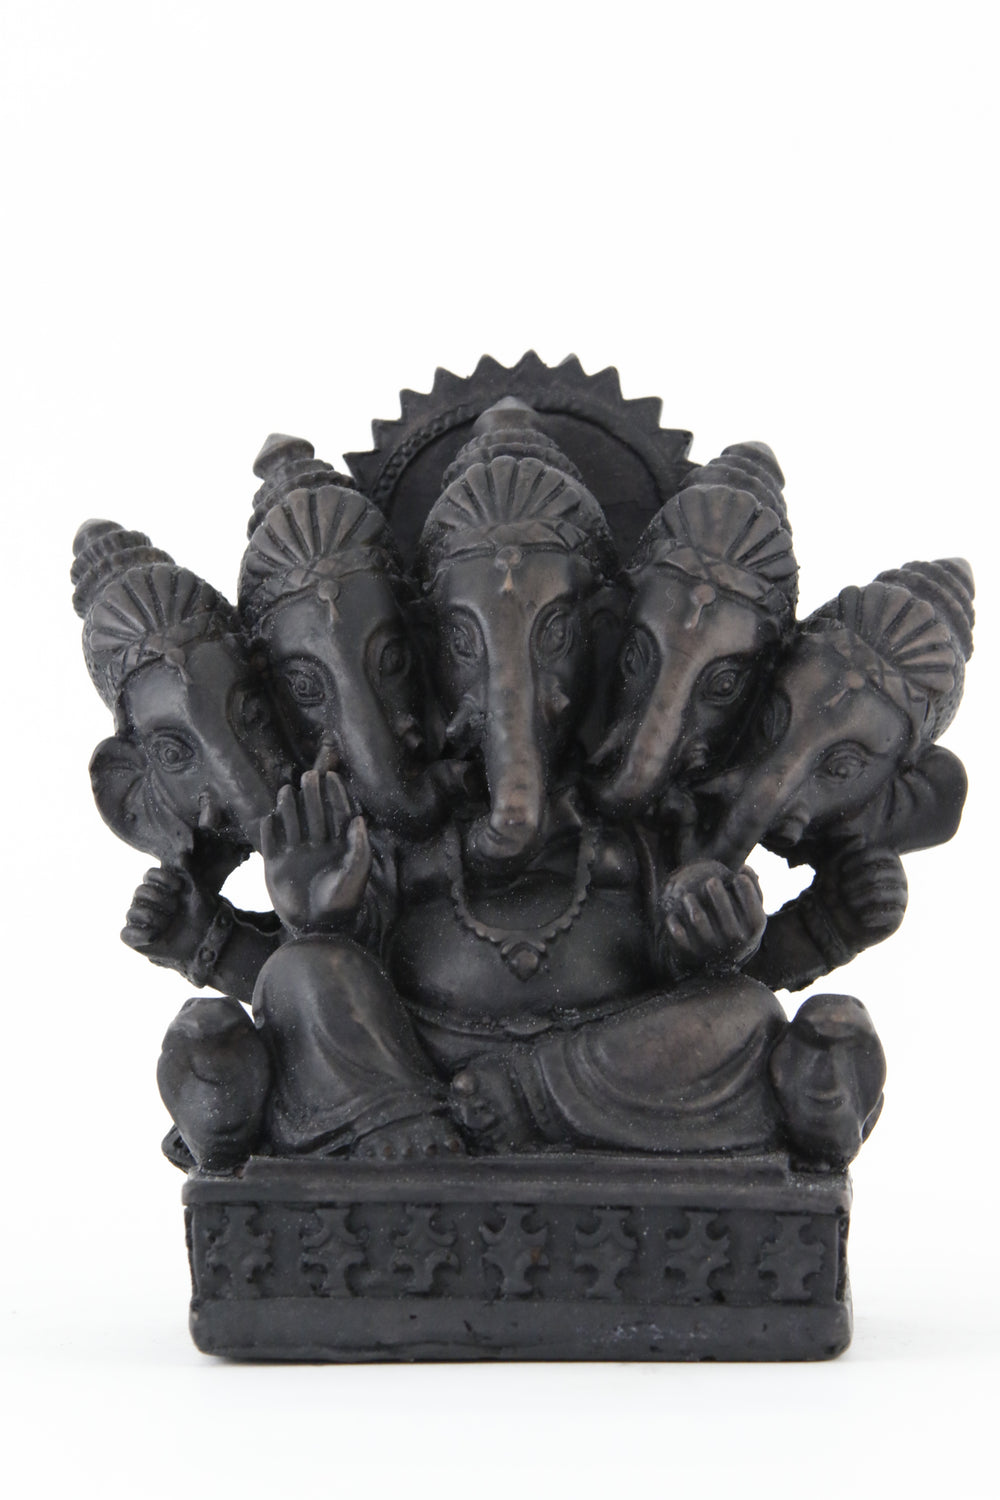 GANESHA MULTI HEAD STATUE DARK FRONT VIEW